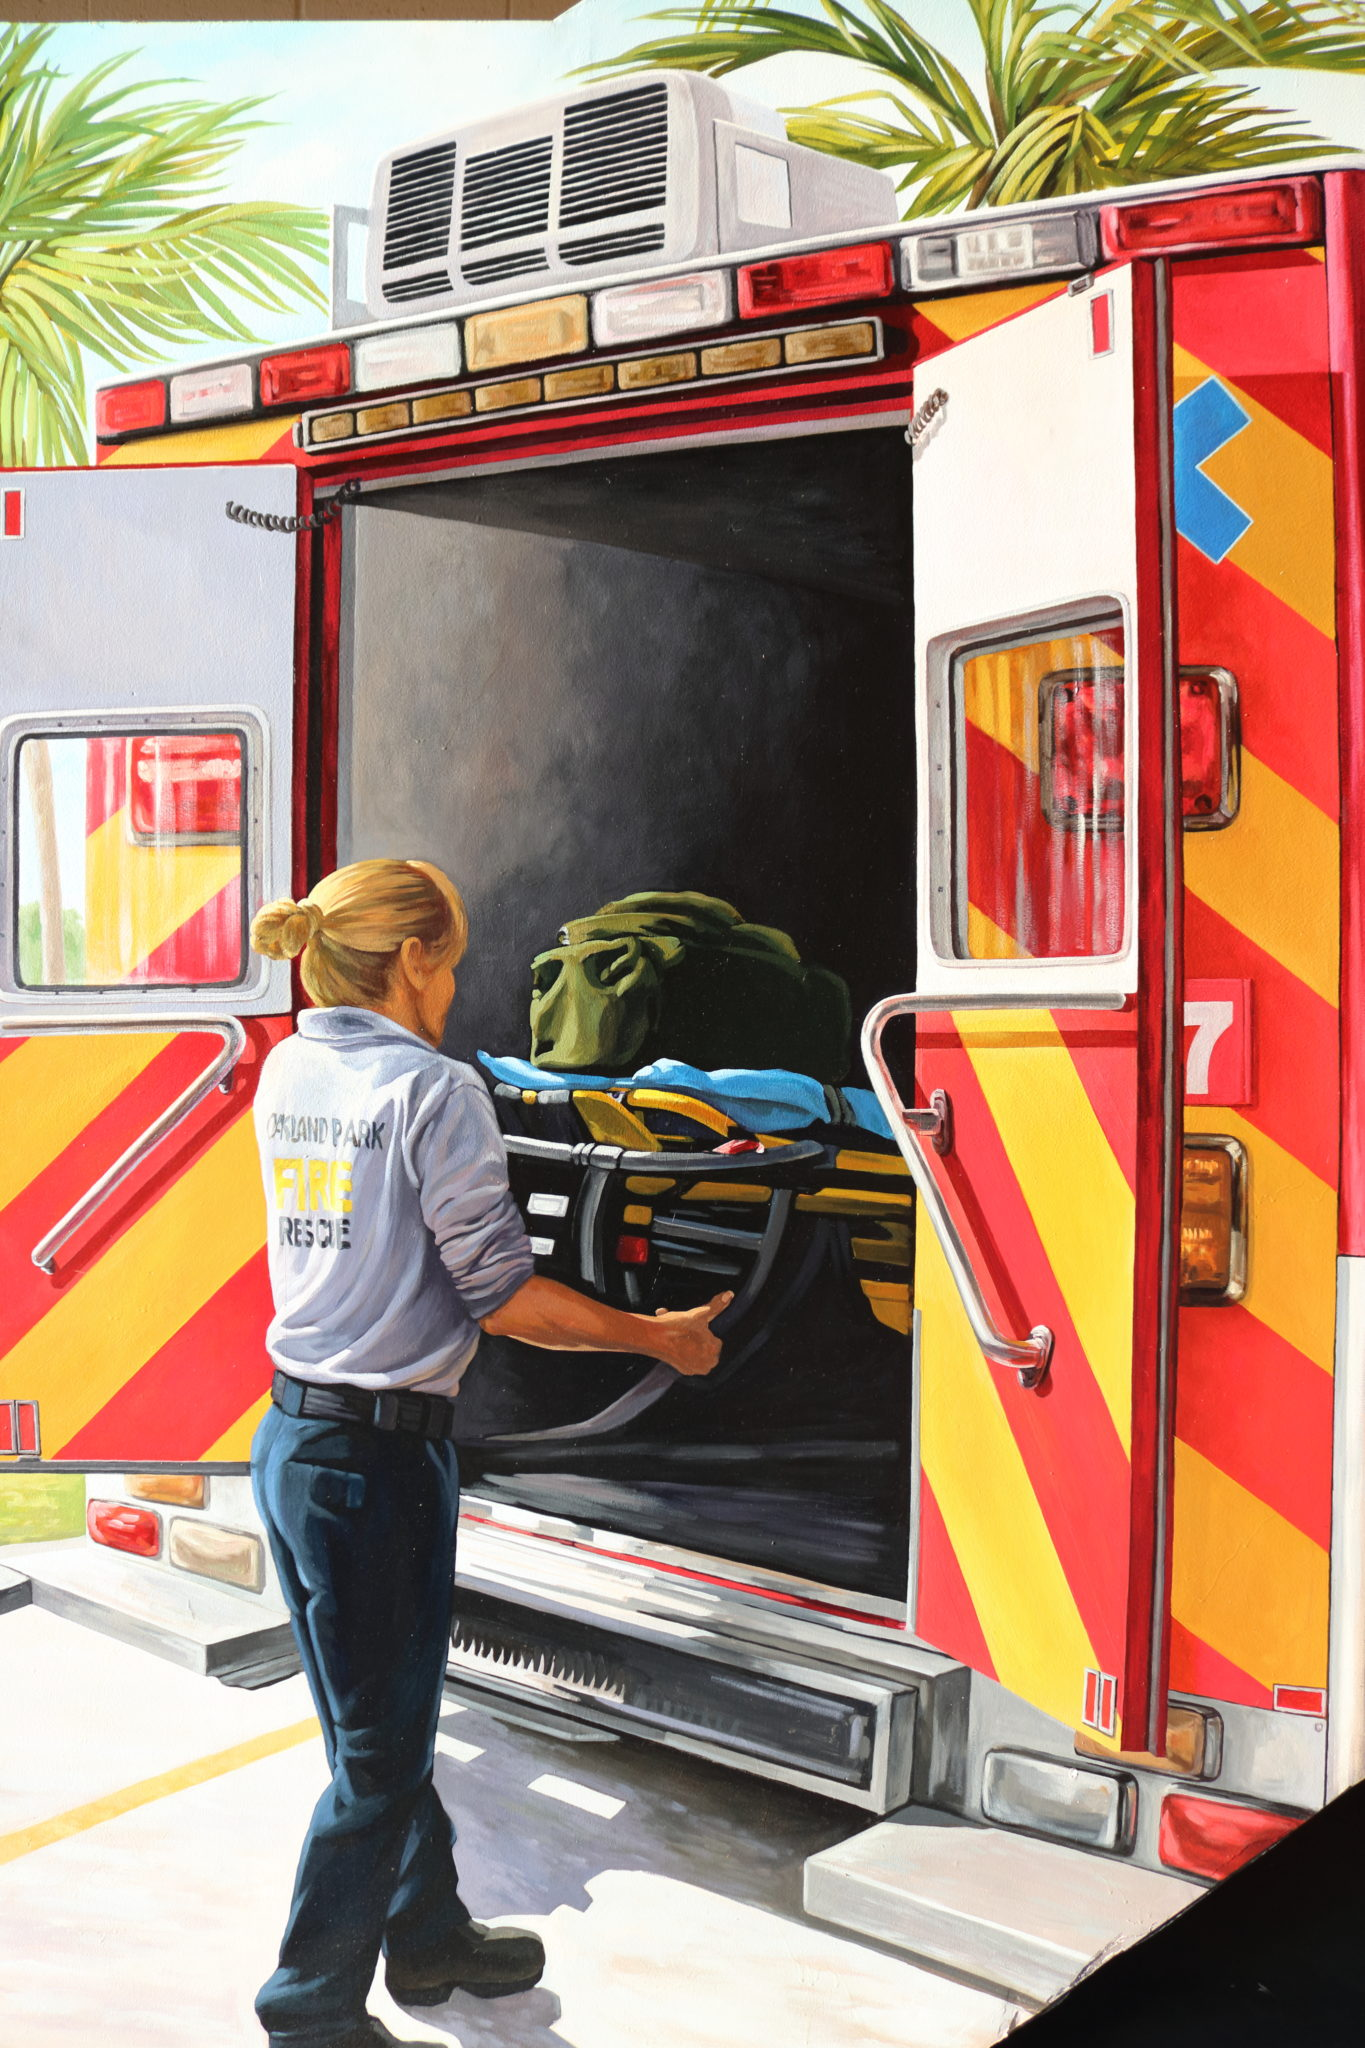 Exceptional Marvelous Fire Station Wall Mural · Ordinary Fire Station Wall Mural Part 20